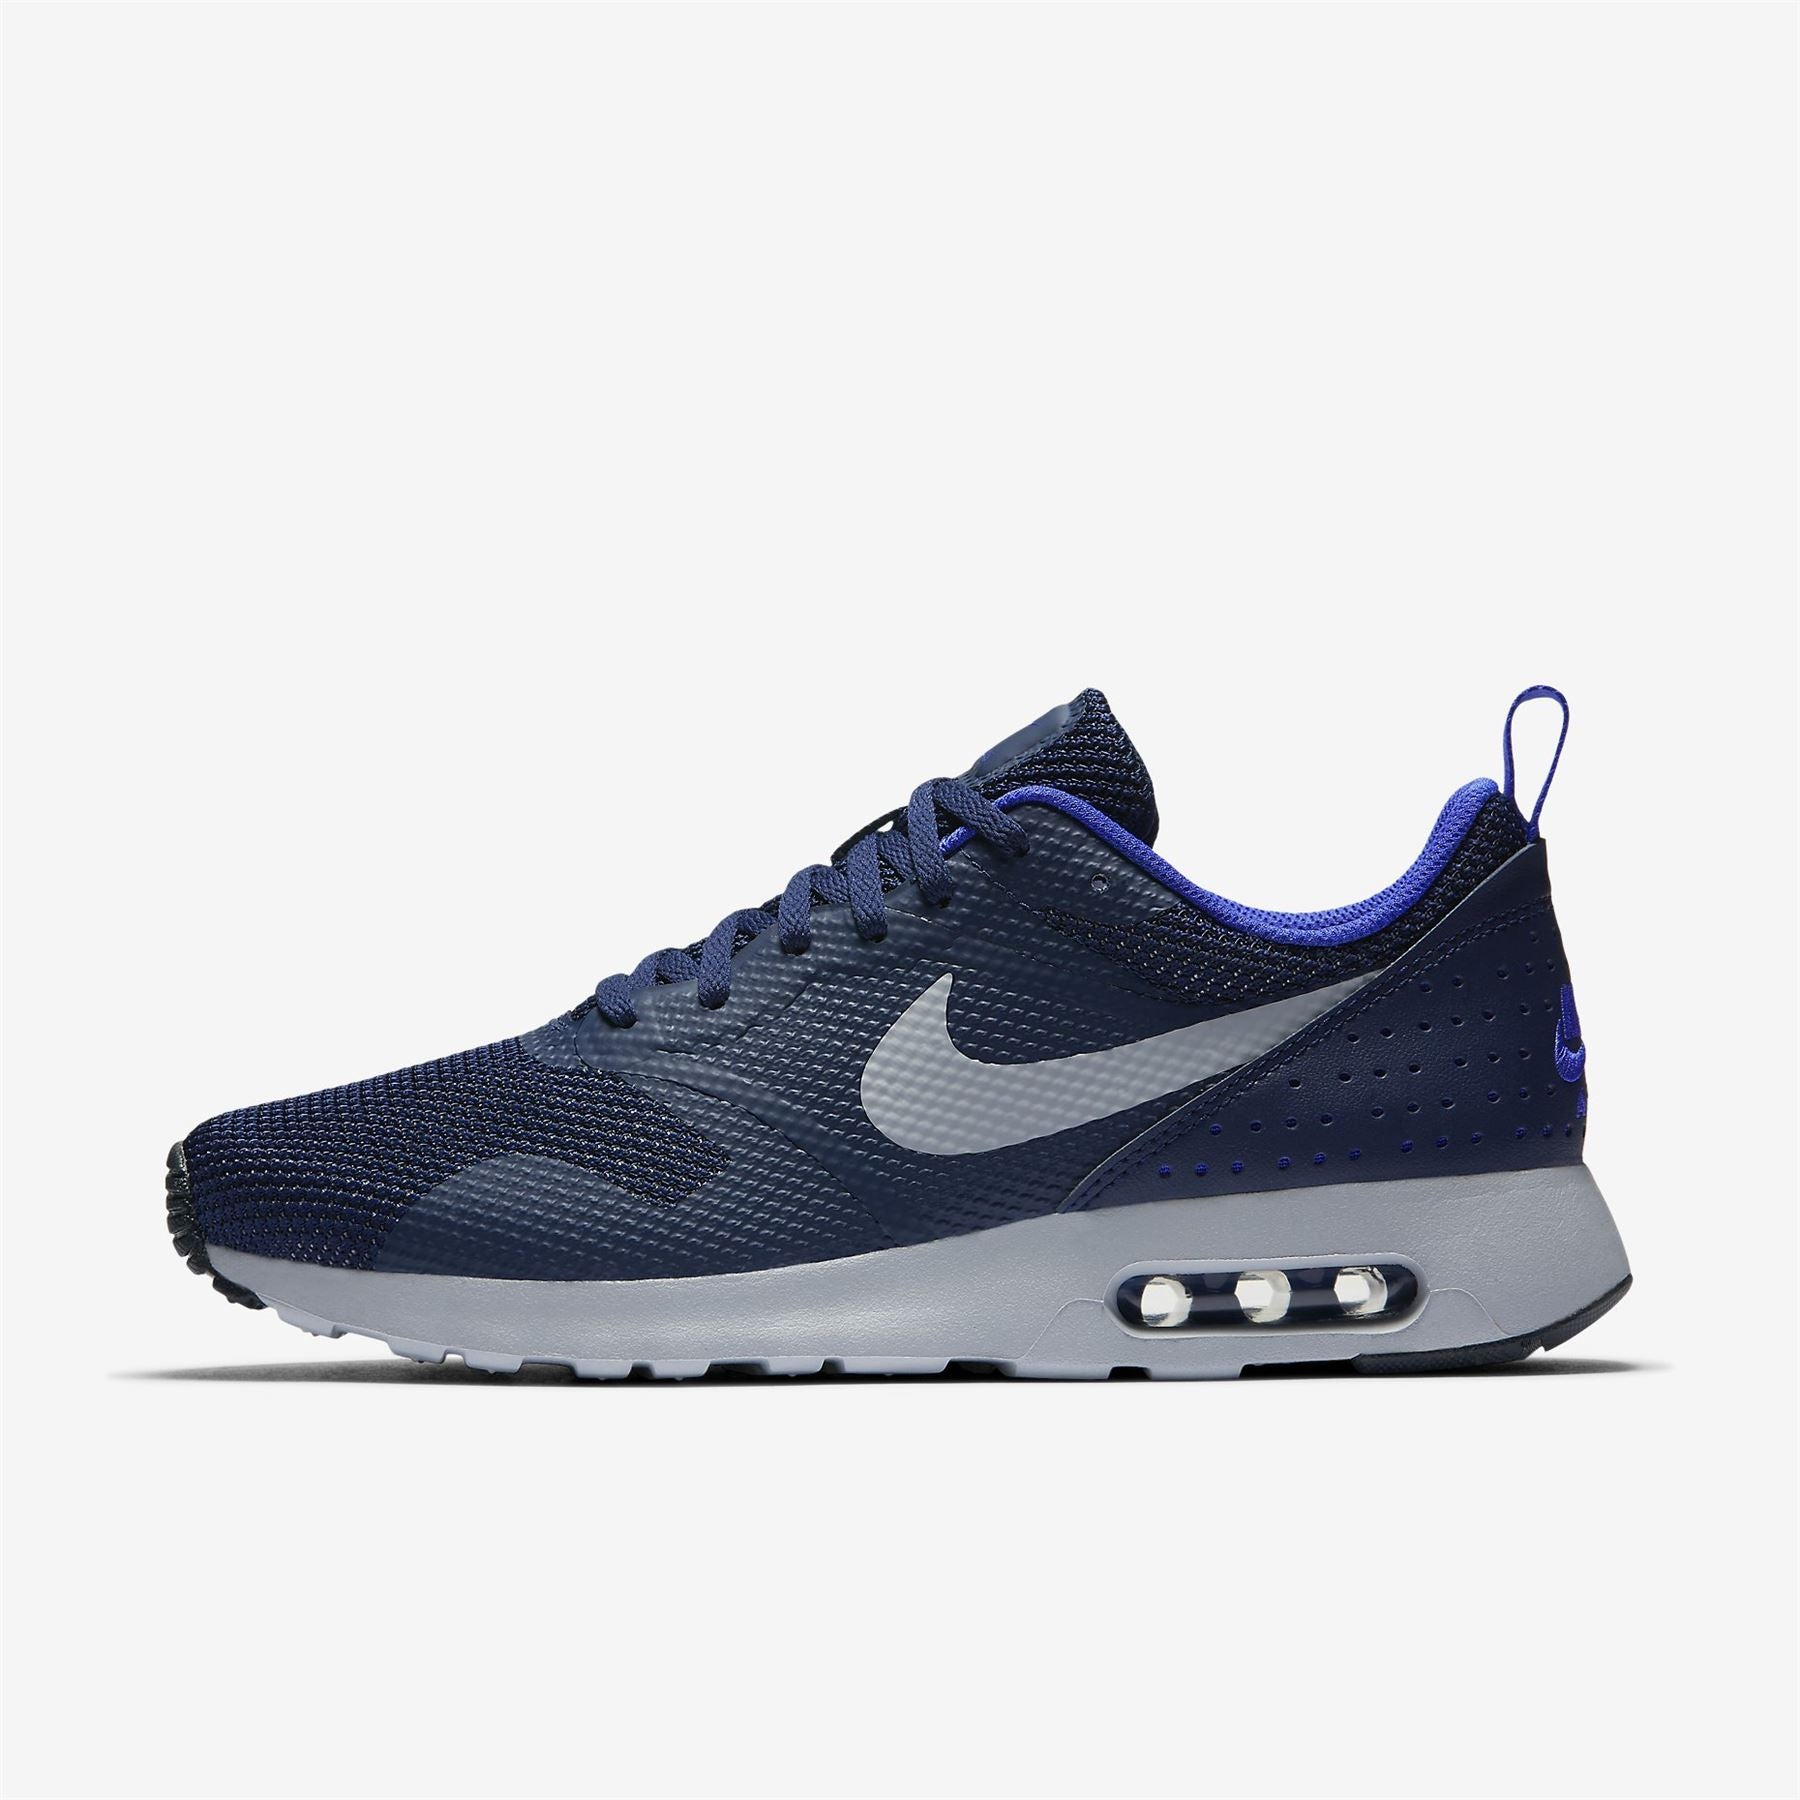 NIKE AIR MAX TAVAS BLUE/GREY 705149 408